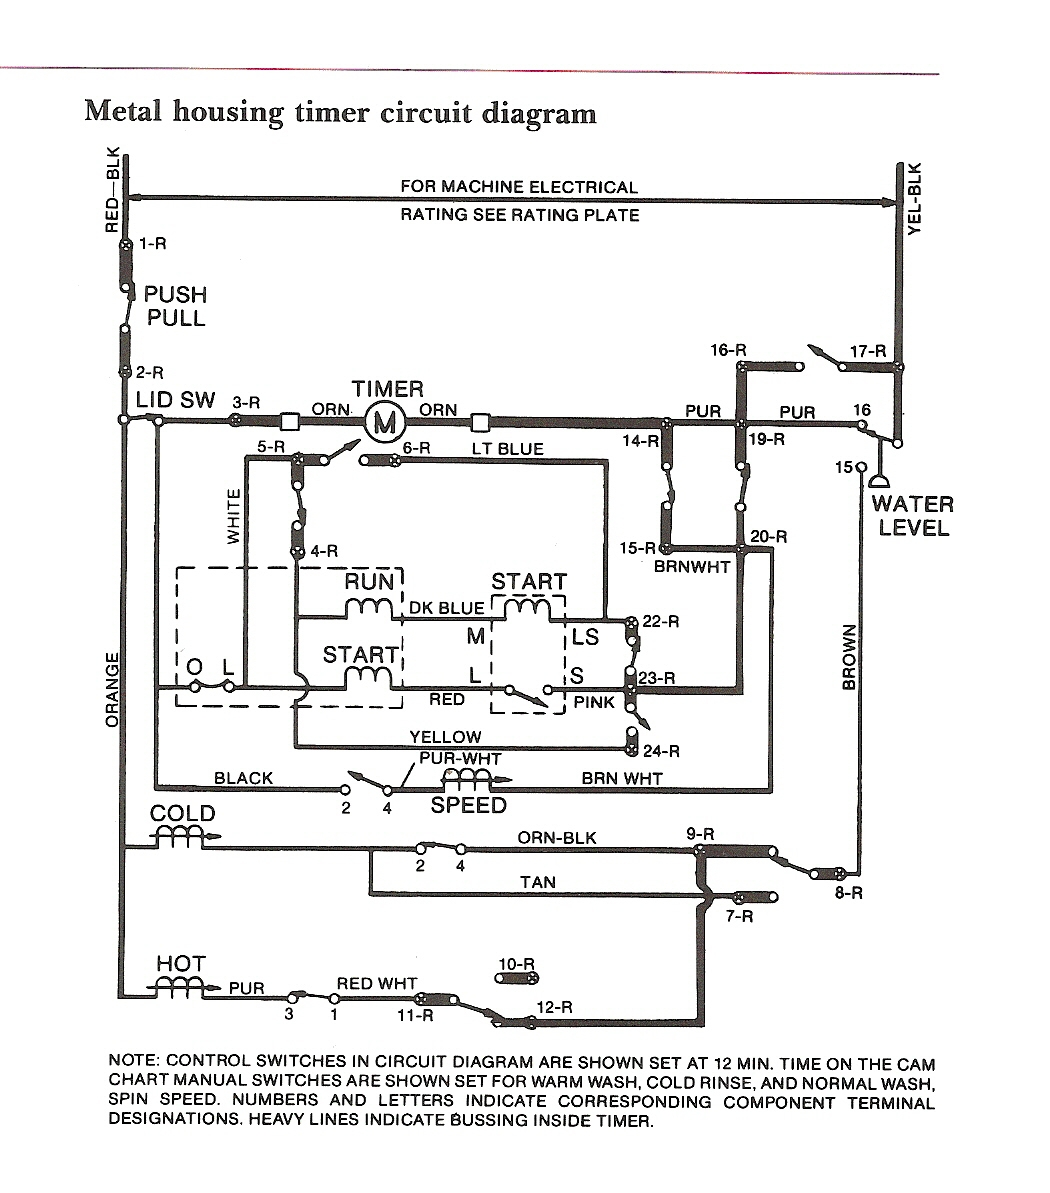 ge single phase motor wiring diagram Collection-Ge Motor Wiring Diagrams Collection Baldor 3 Phase Motors Wiring Diagram Color Codes Single Best 12-a